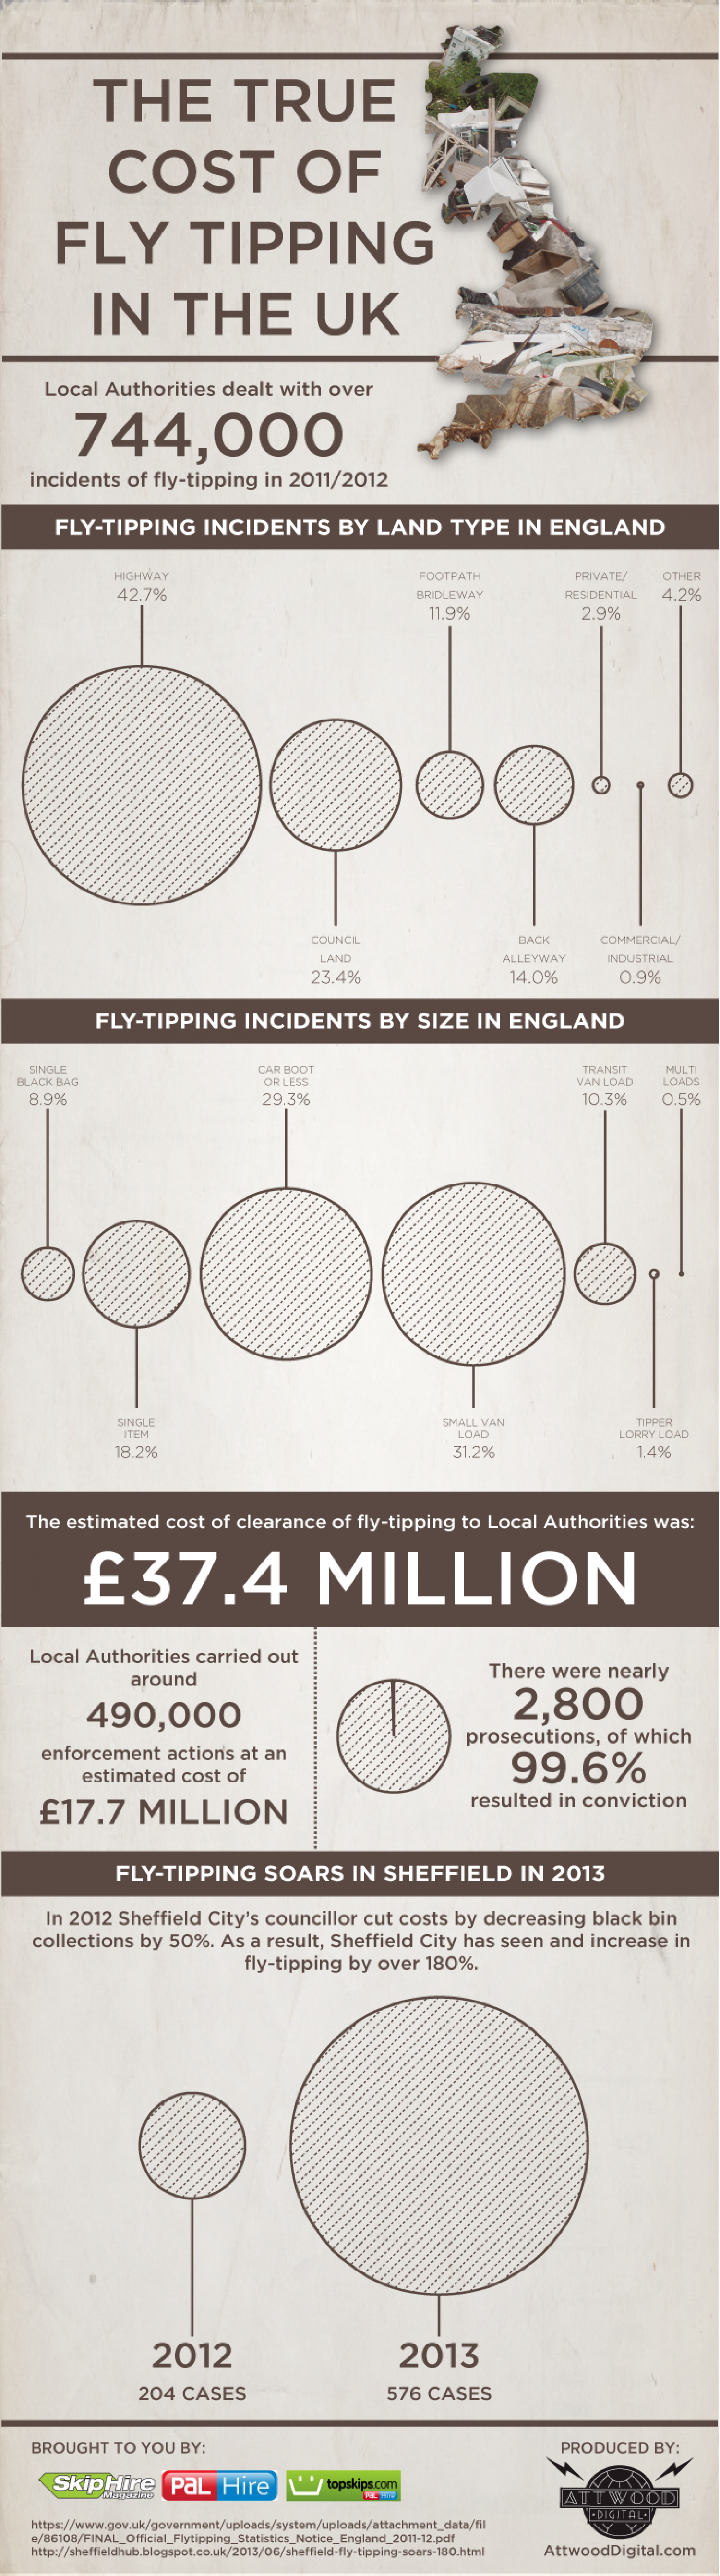 The True Cost Of Fly Tipping In The UK Infographic